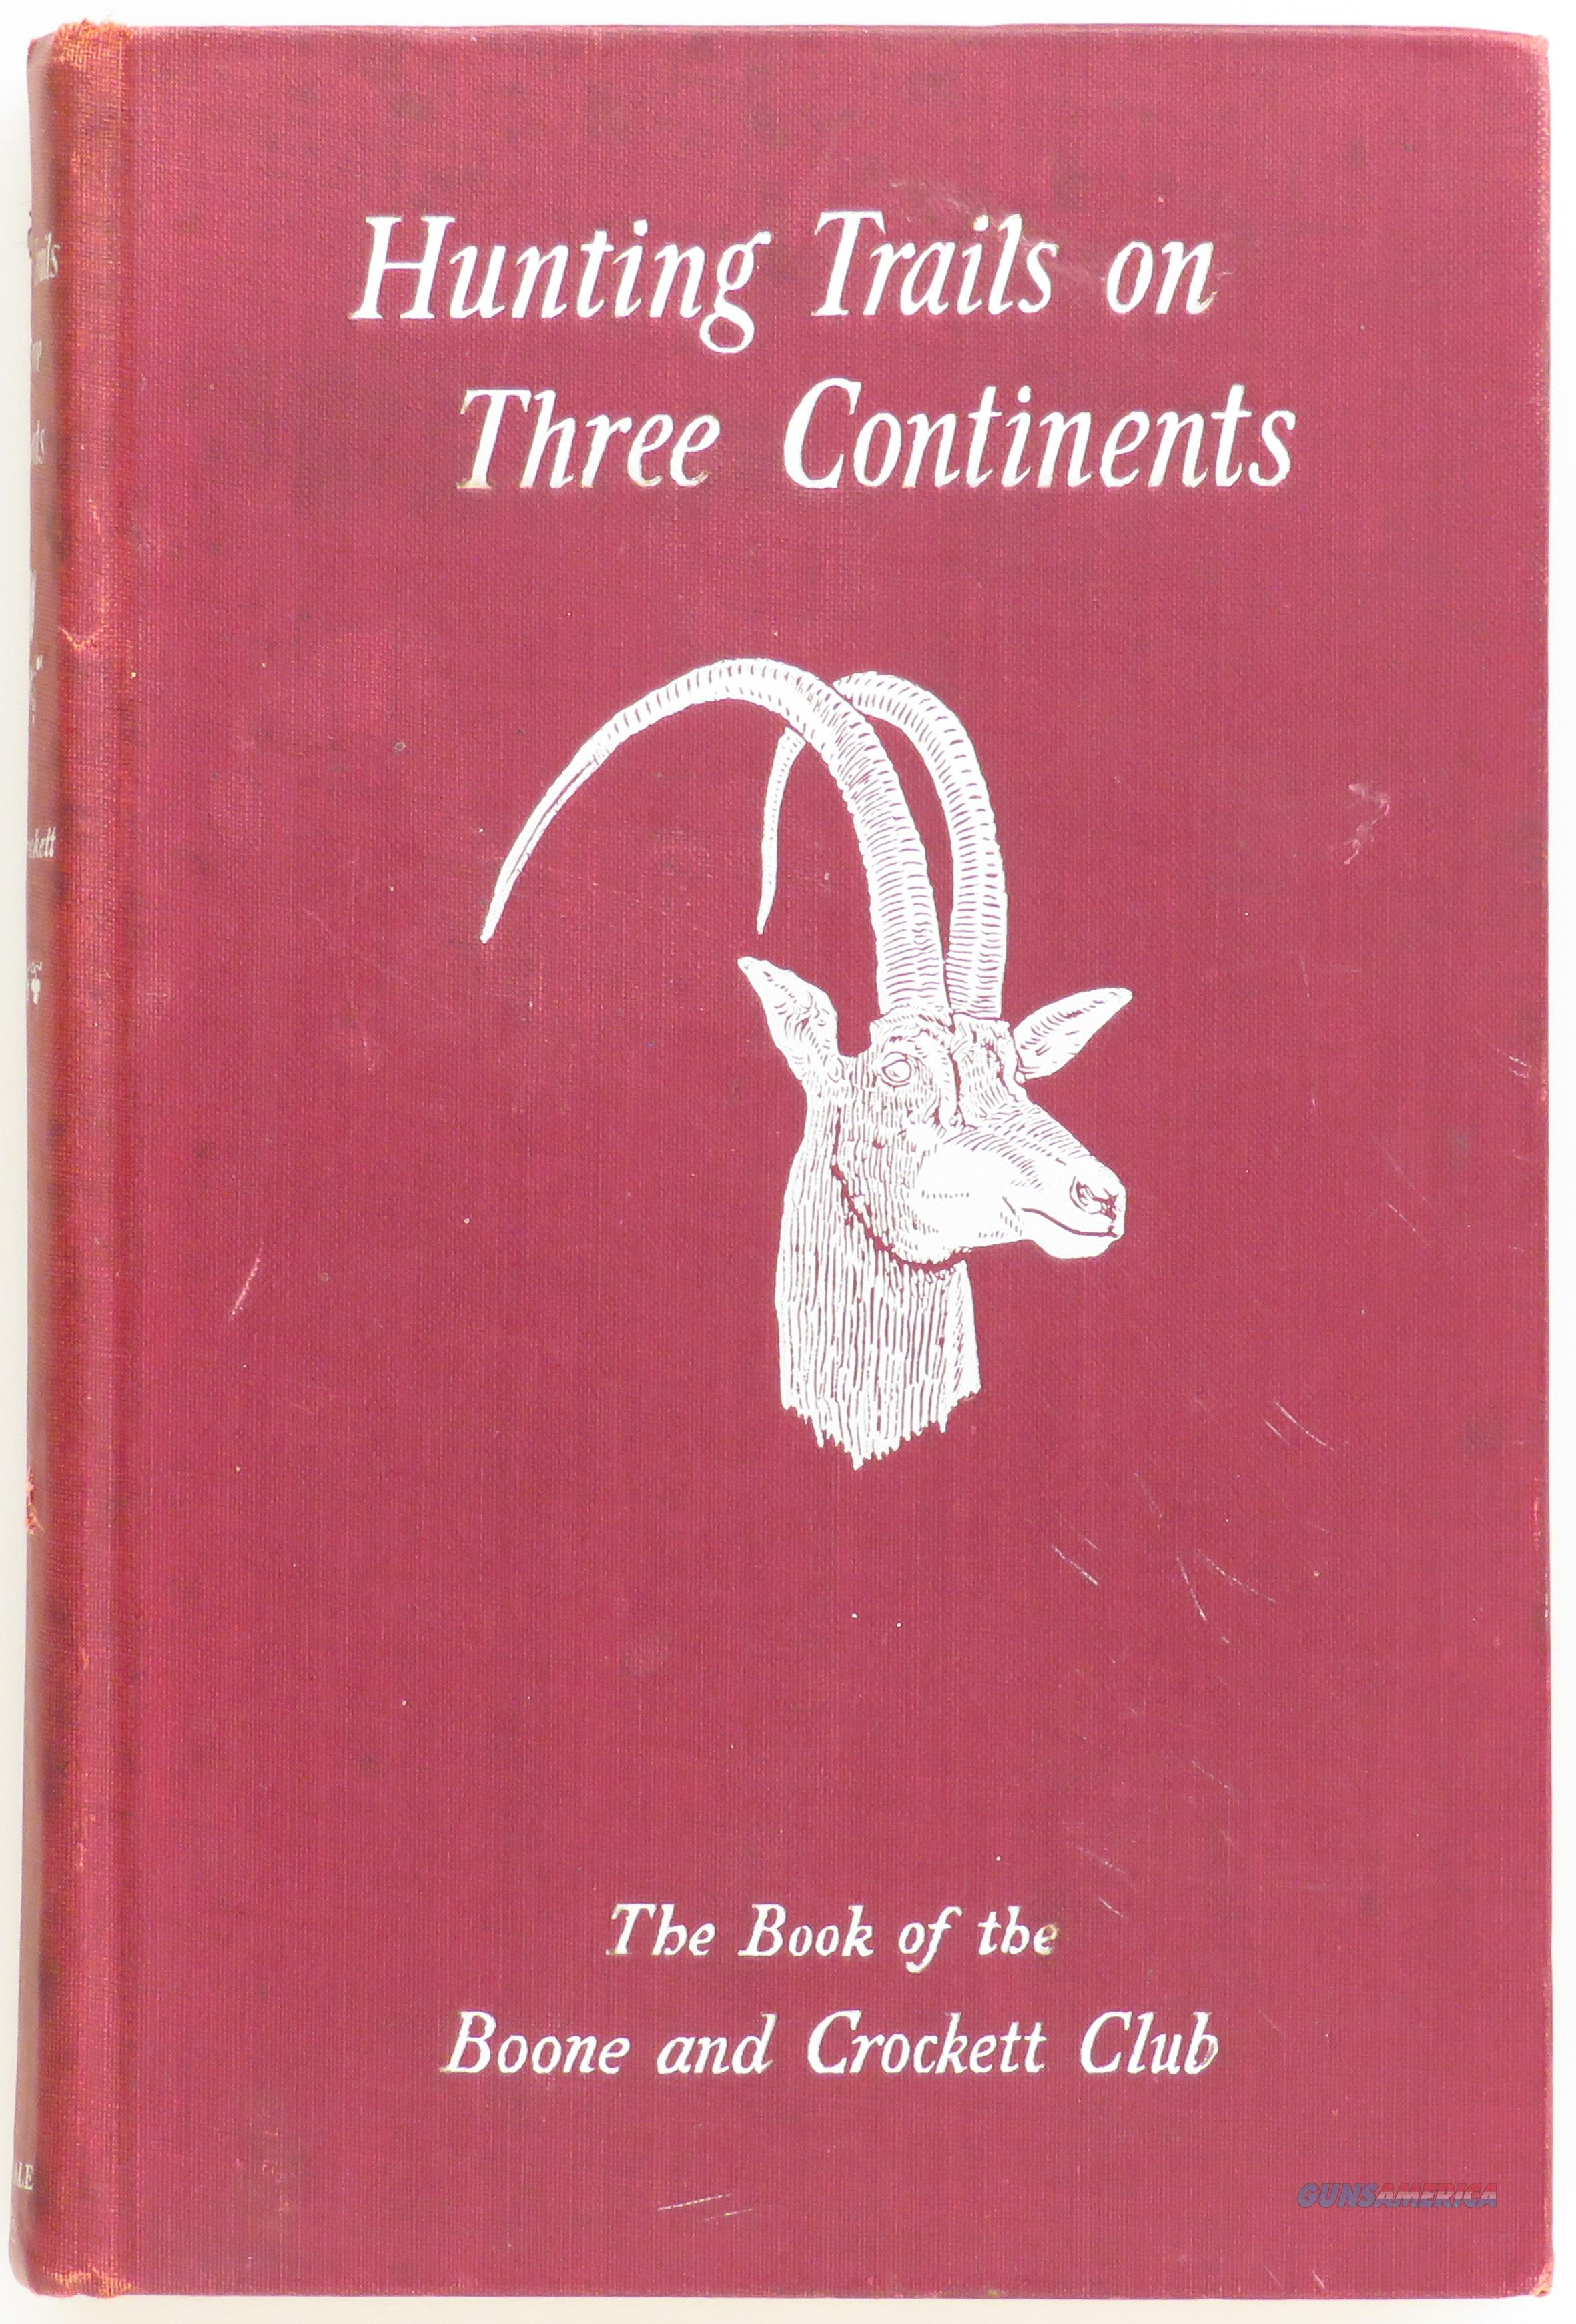 Hunting Trails on Three Continents, Derrydale Press for the Boone and Crockett Club, 40/250   Non-Guns > Books & Magazines